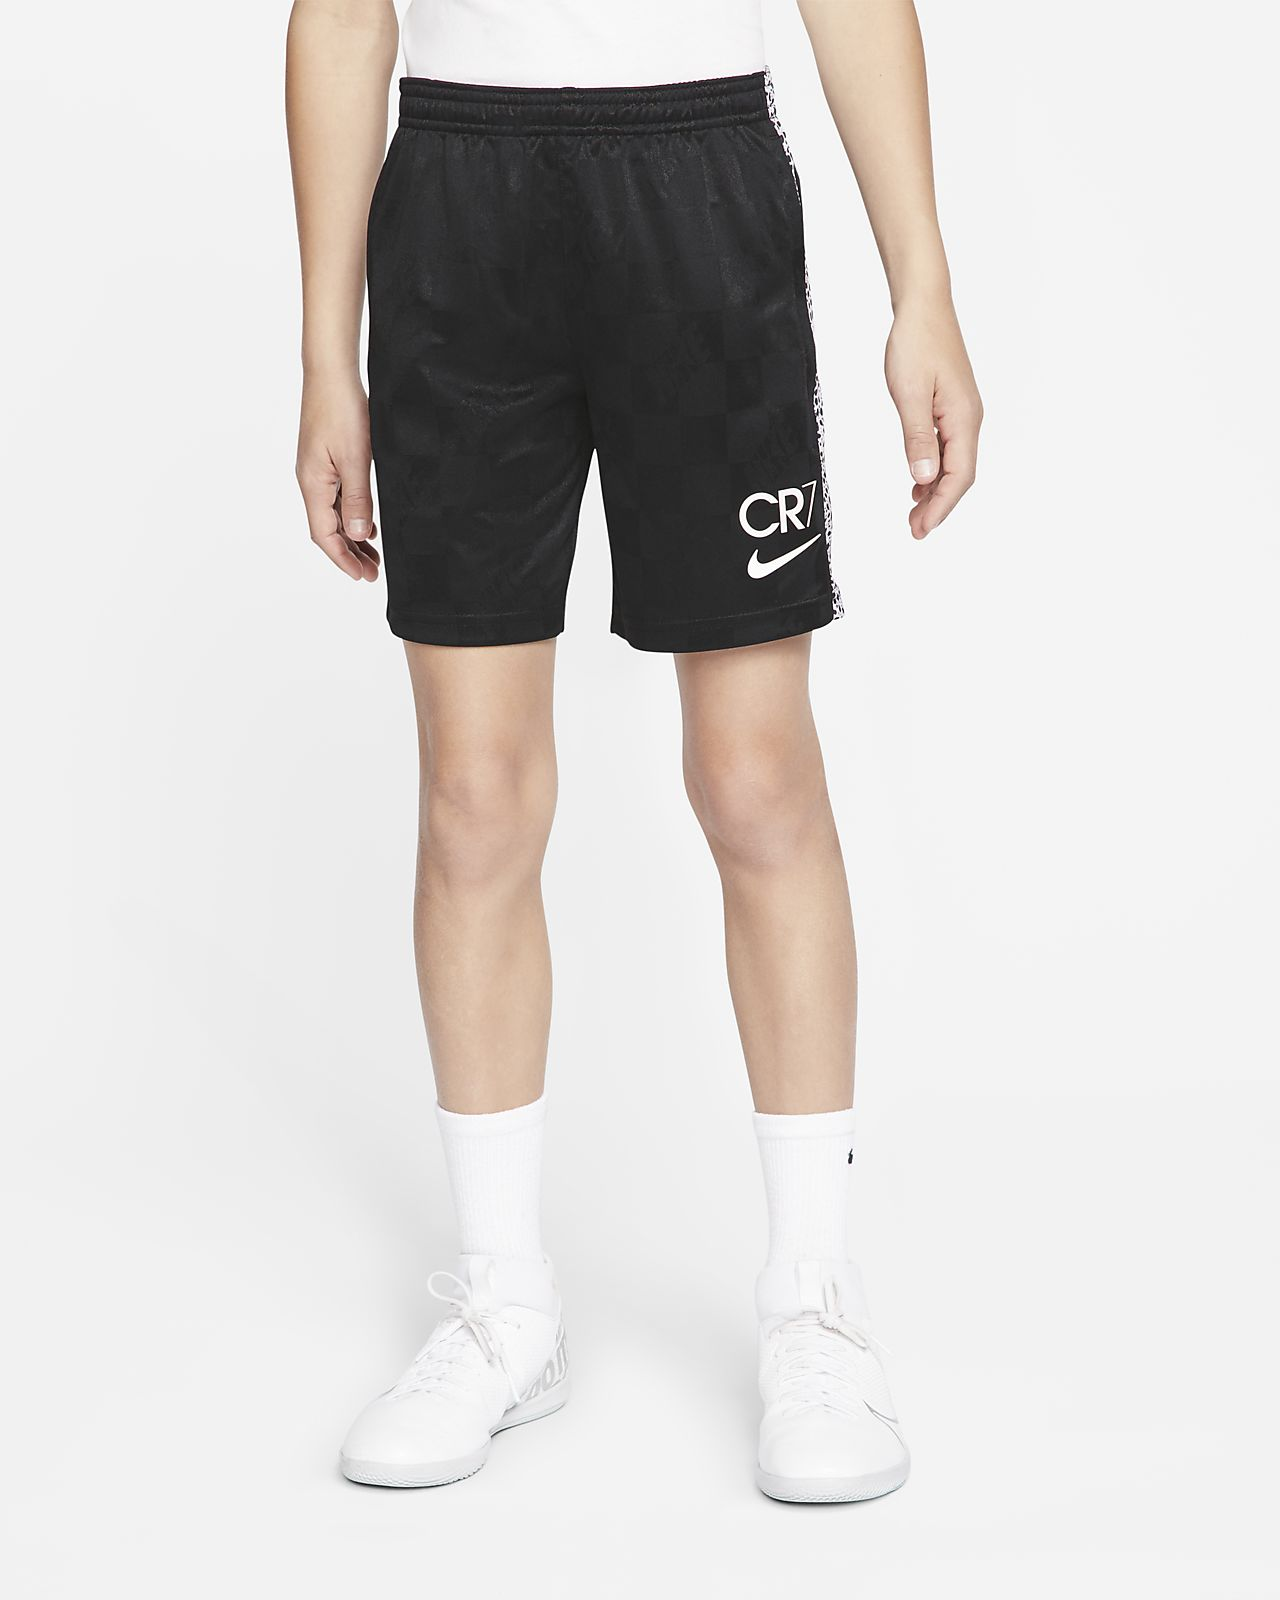 Nike Dri-FIT CR7 Big Kids' Soccer Shorts